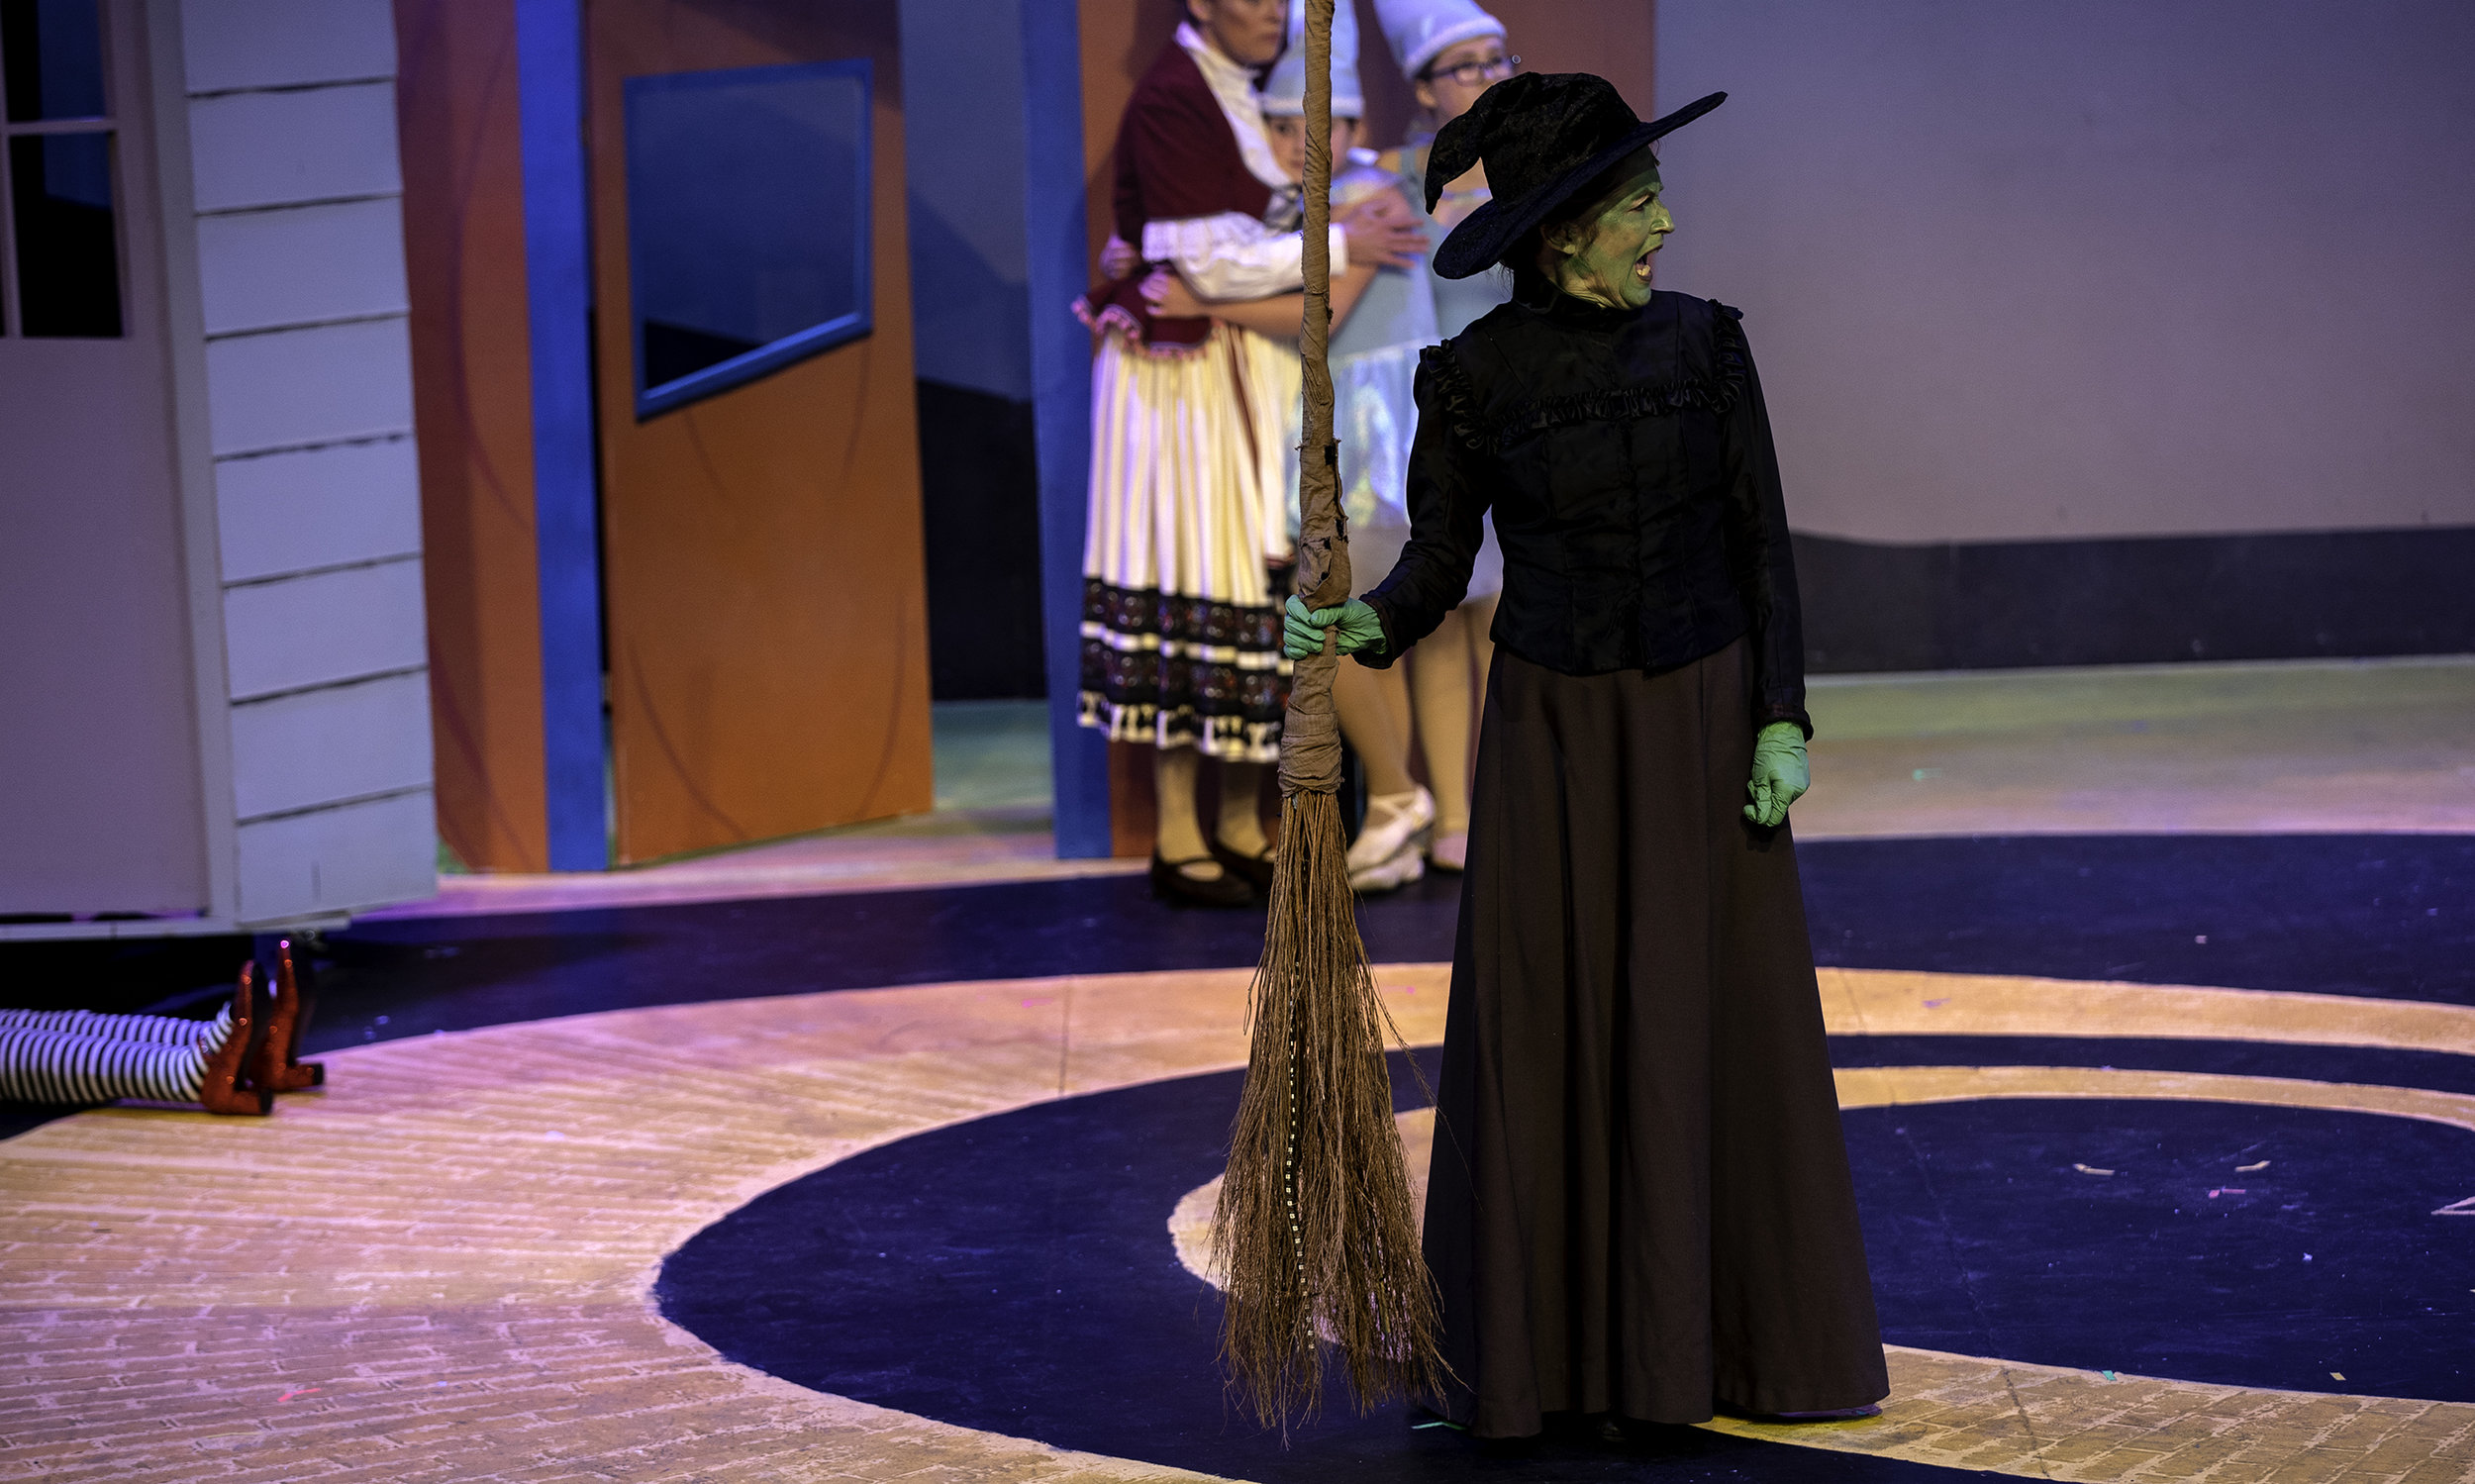 The Witch in Oz_02417.jpg